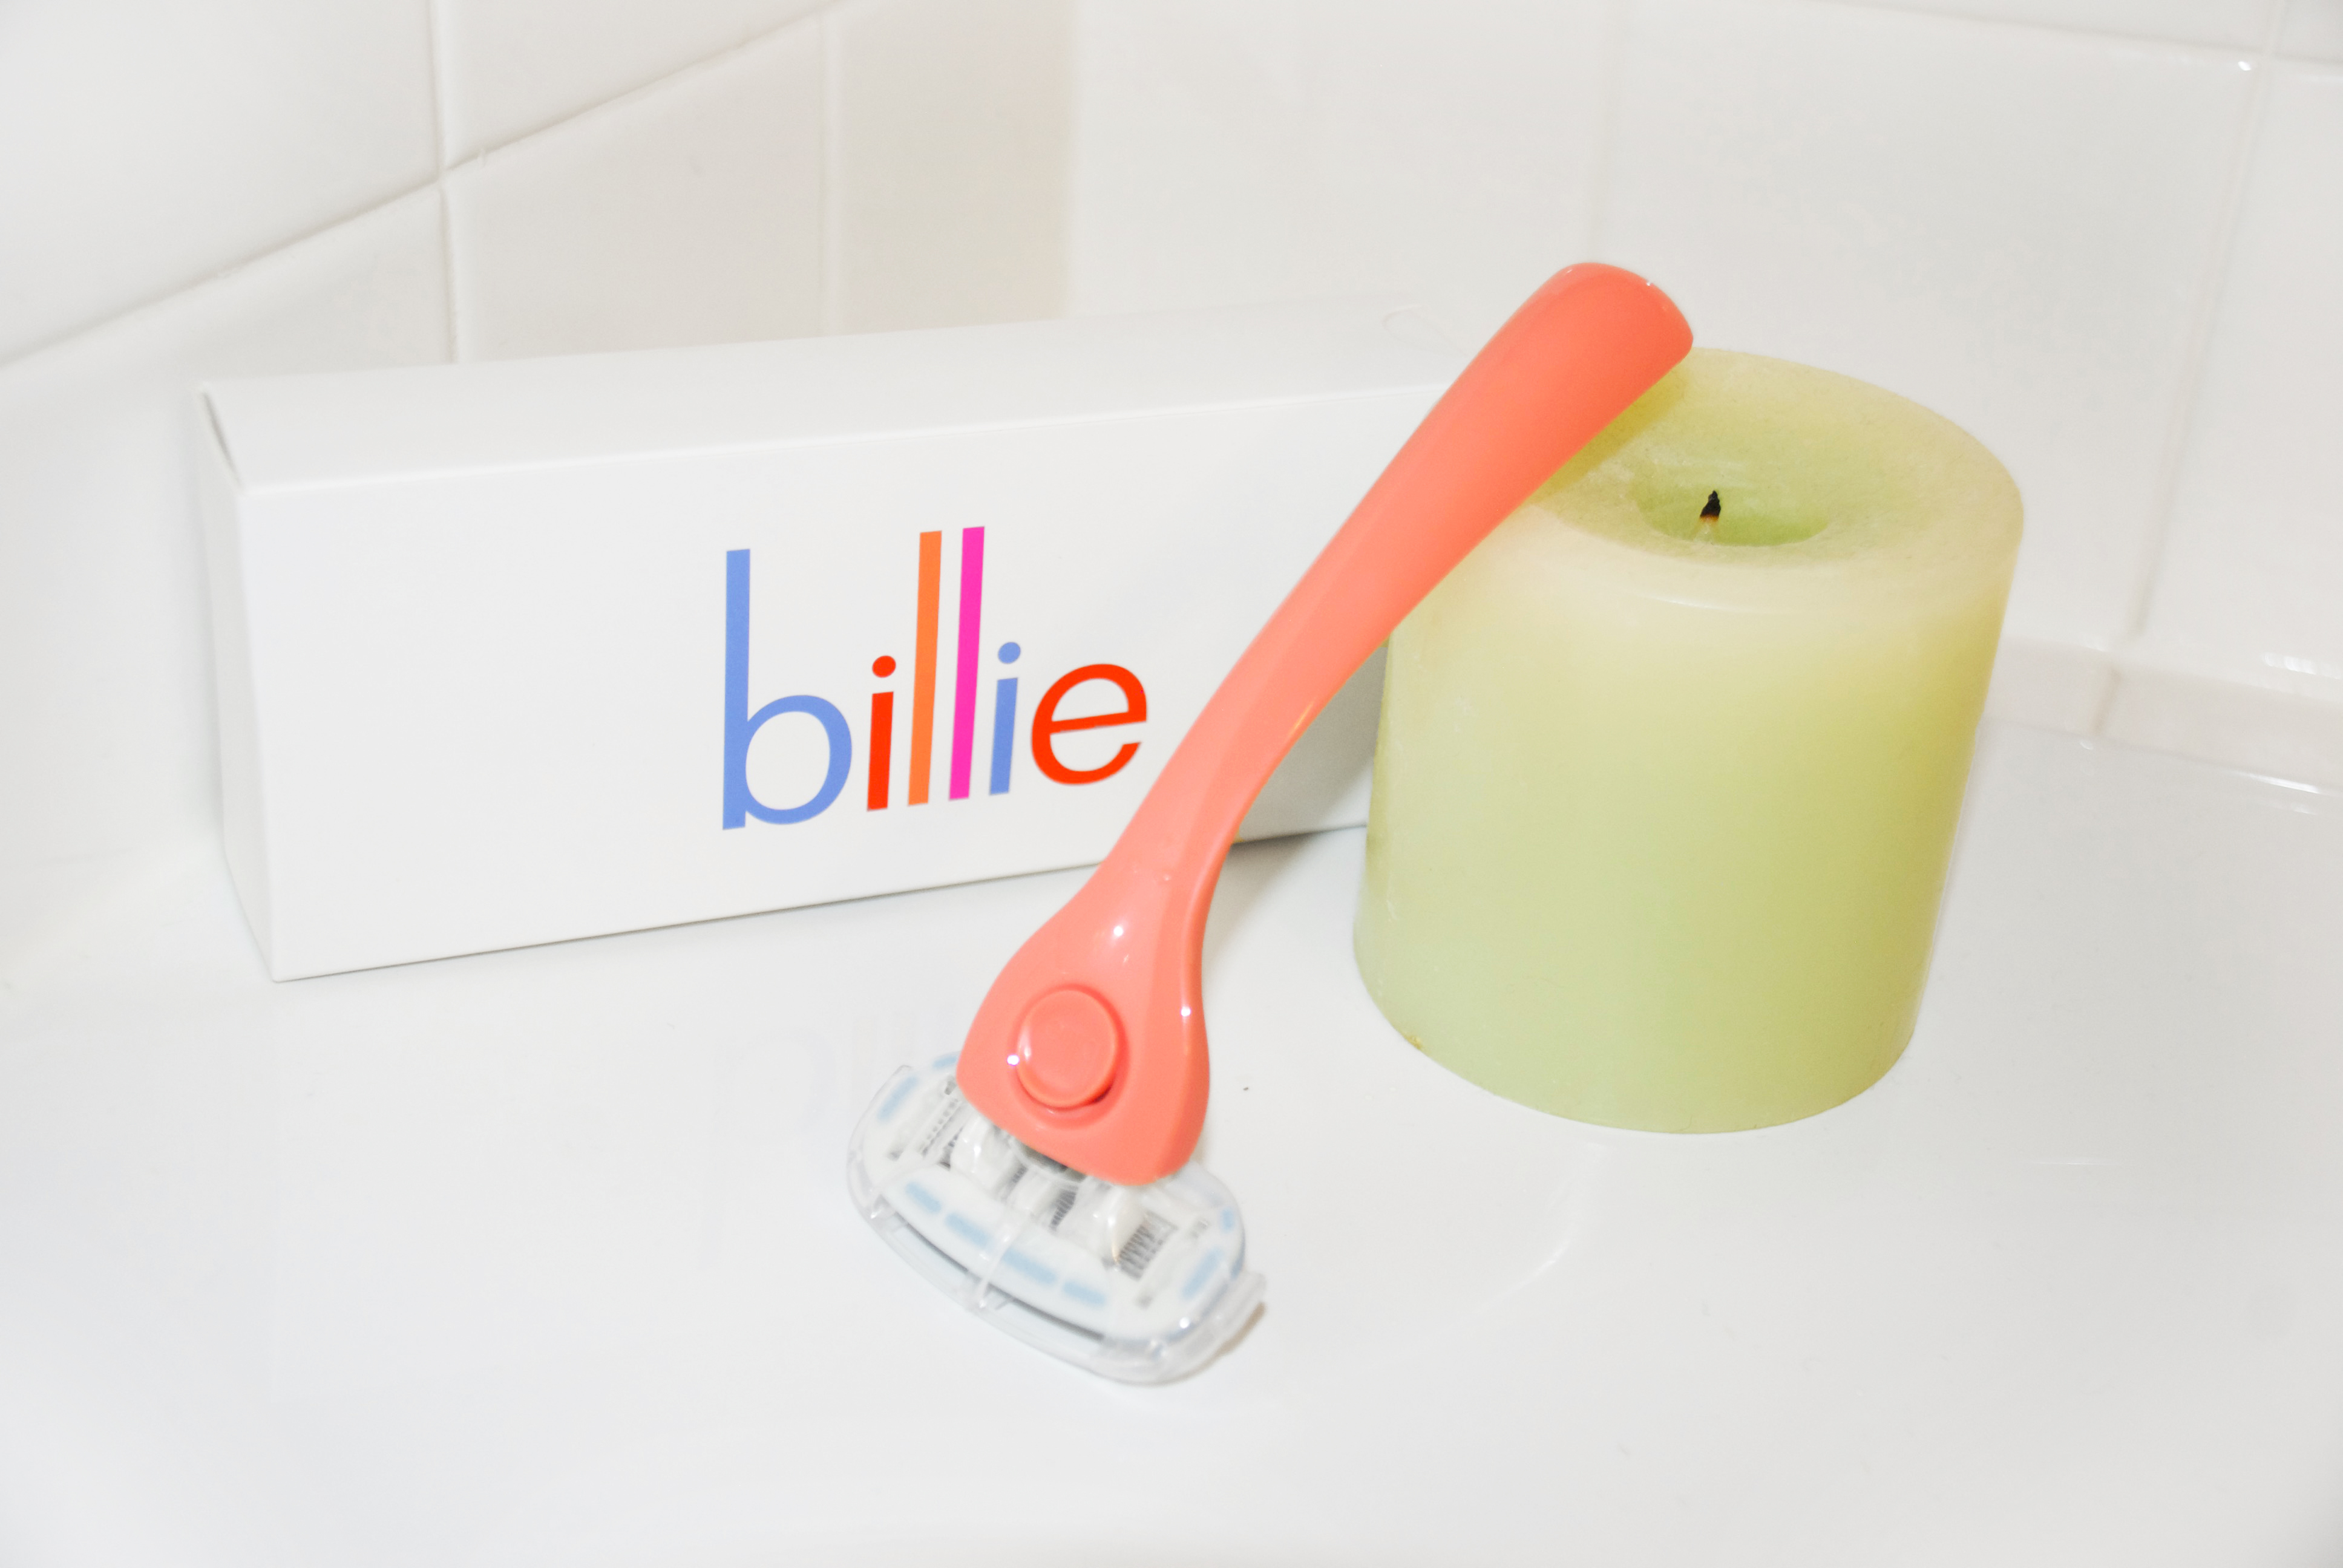 Coral Billy Shaving Blade with box and green candle